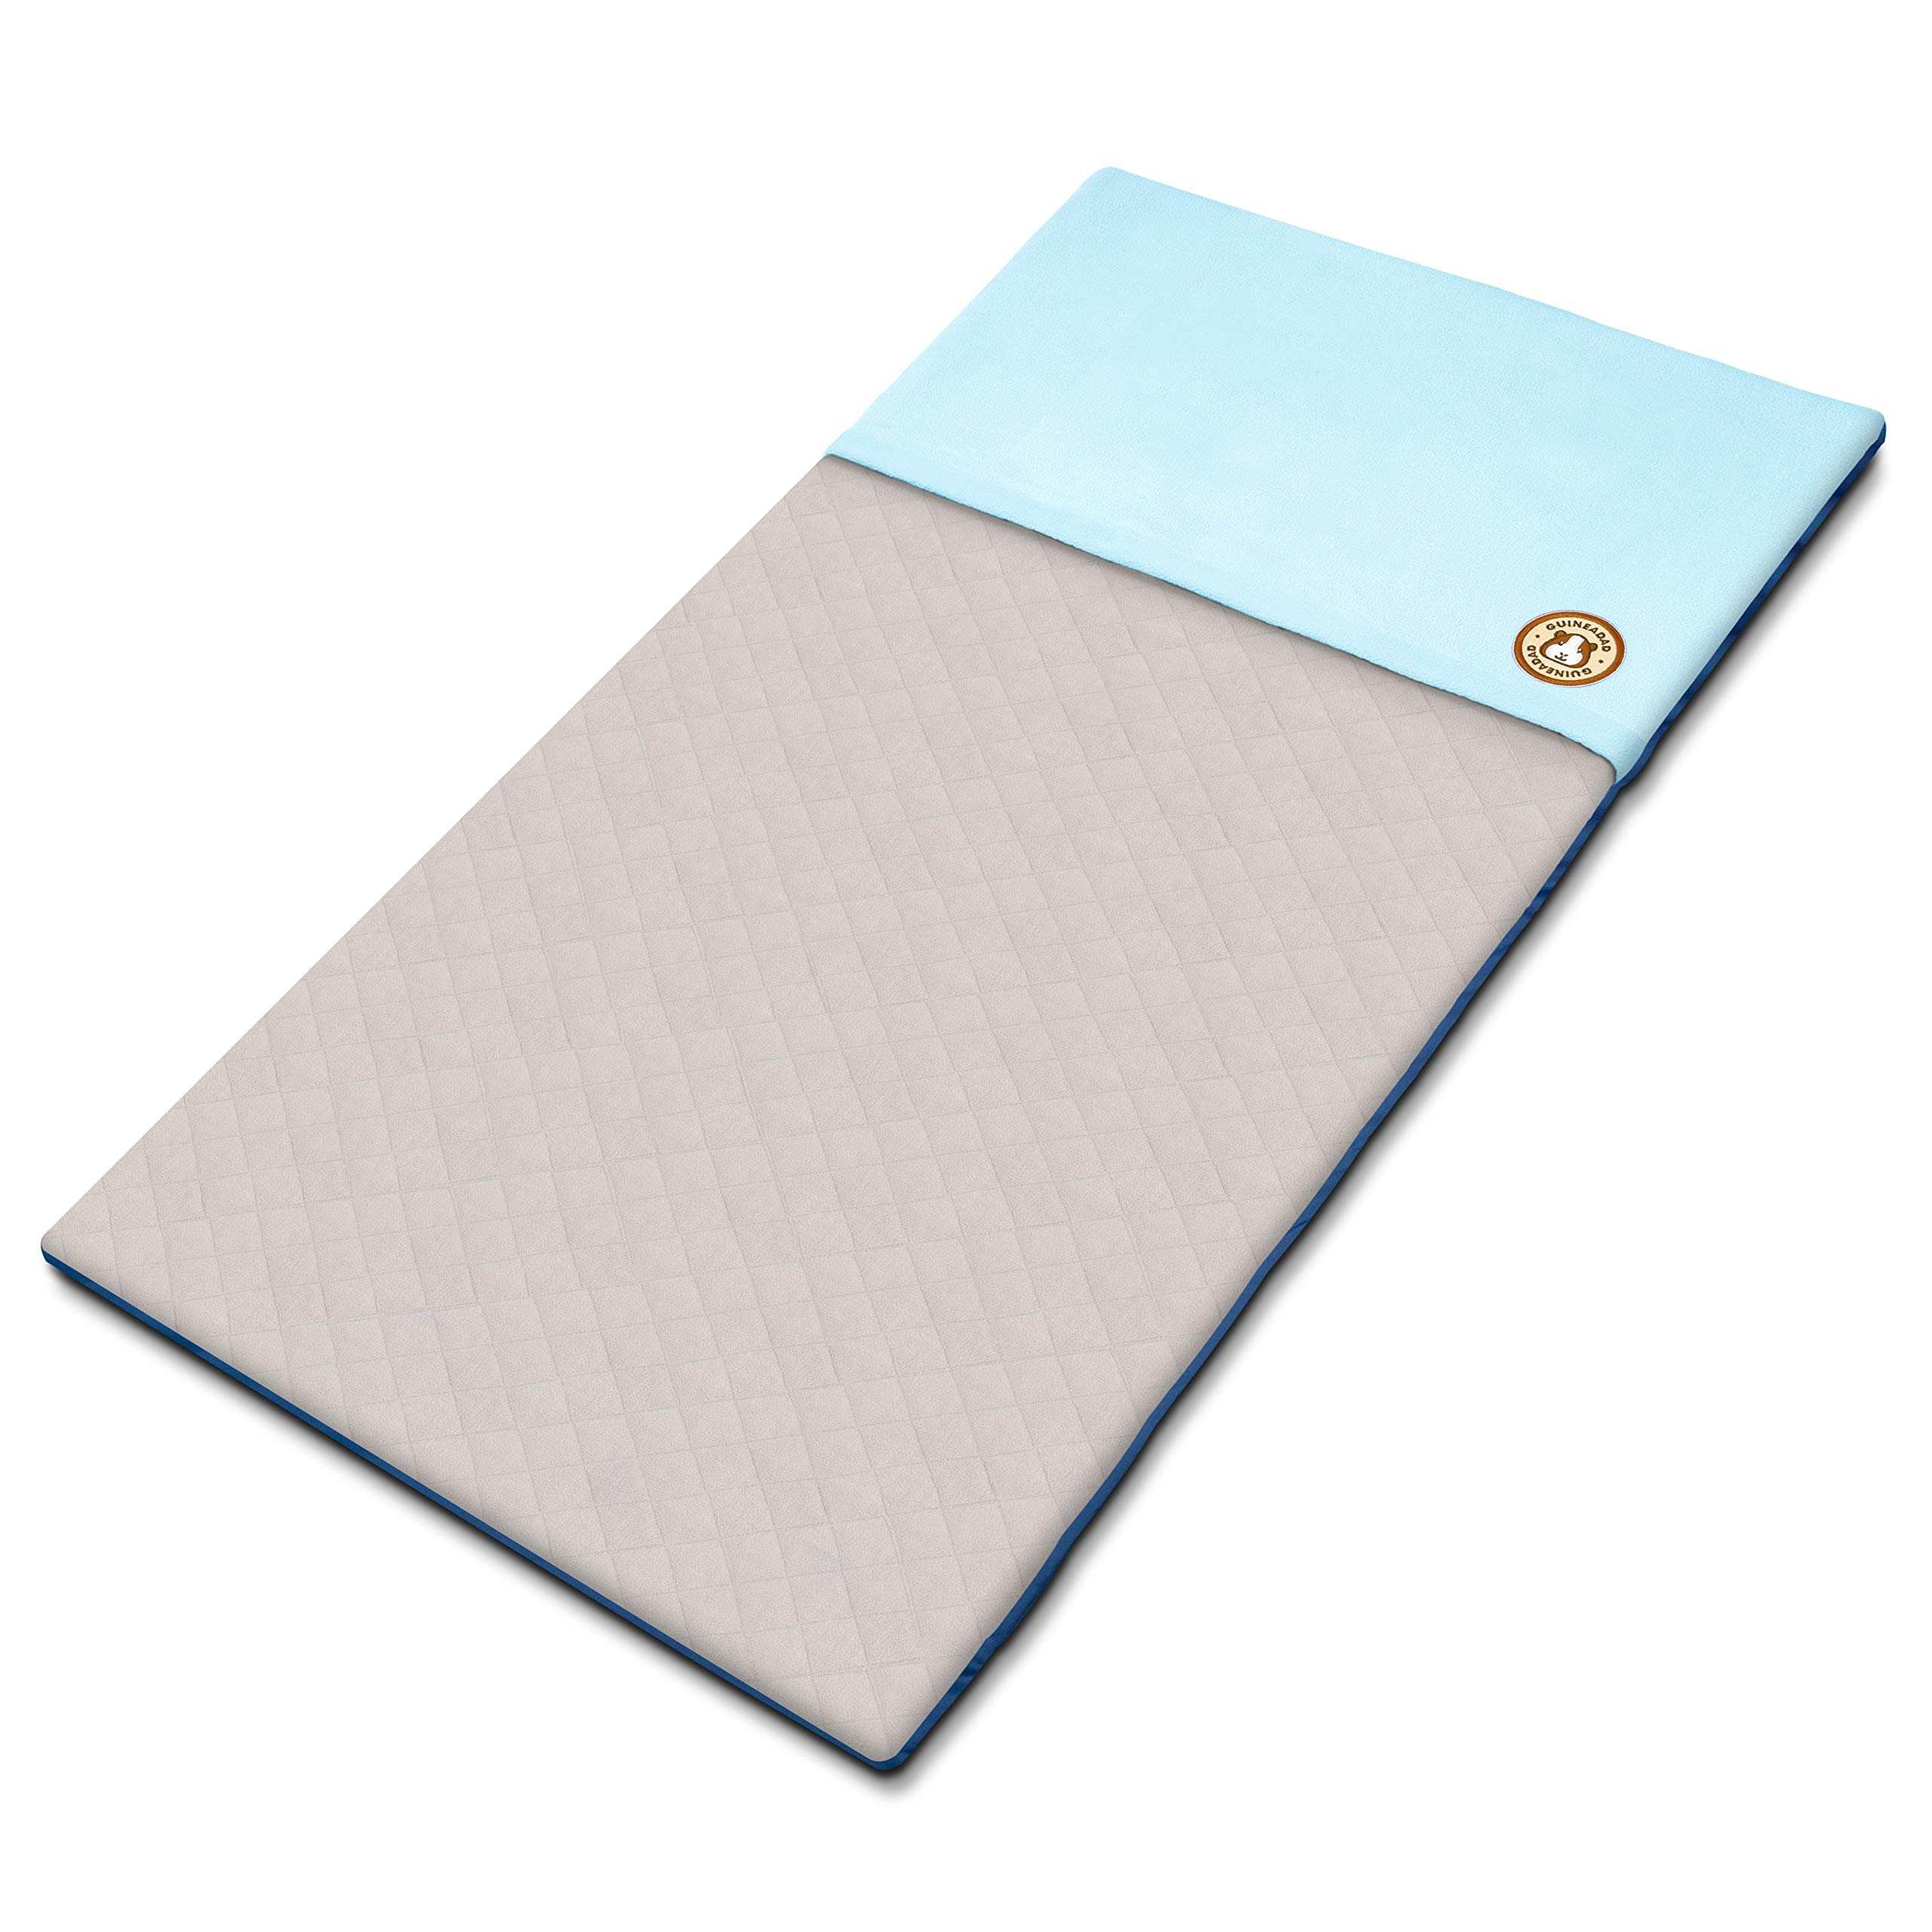 GuineaDad Fleece Liner 2.0 | Guinea Pig Fleece Cage Liners Bedding | Burrowing Pocket Sleeve | Extra Absorbent Antibacterial Bamboo | Waterproof | Available Various Cage Sizes by GuineaDad